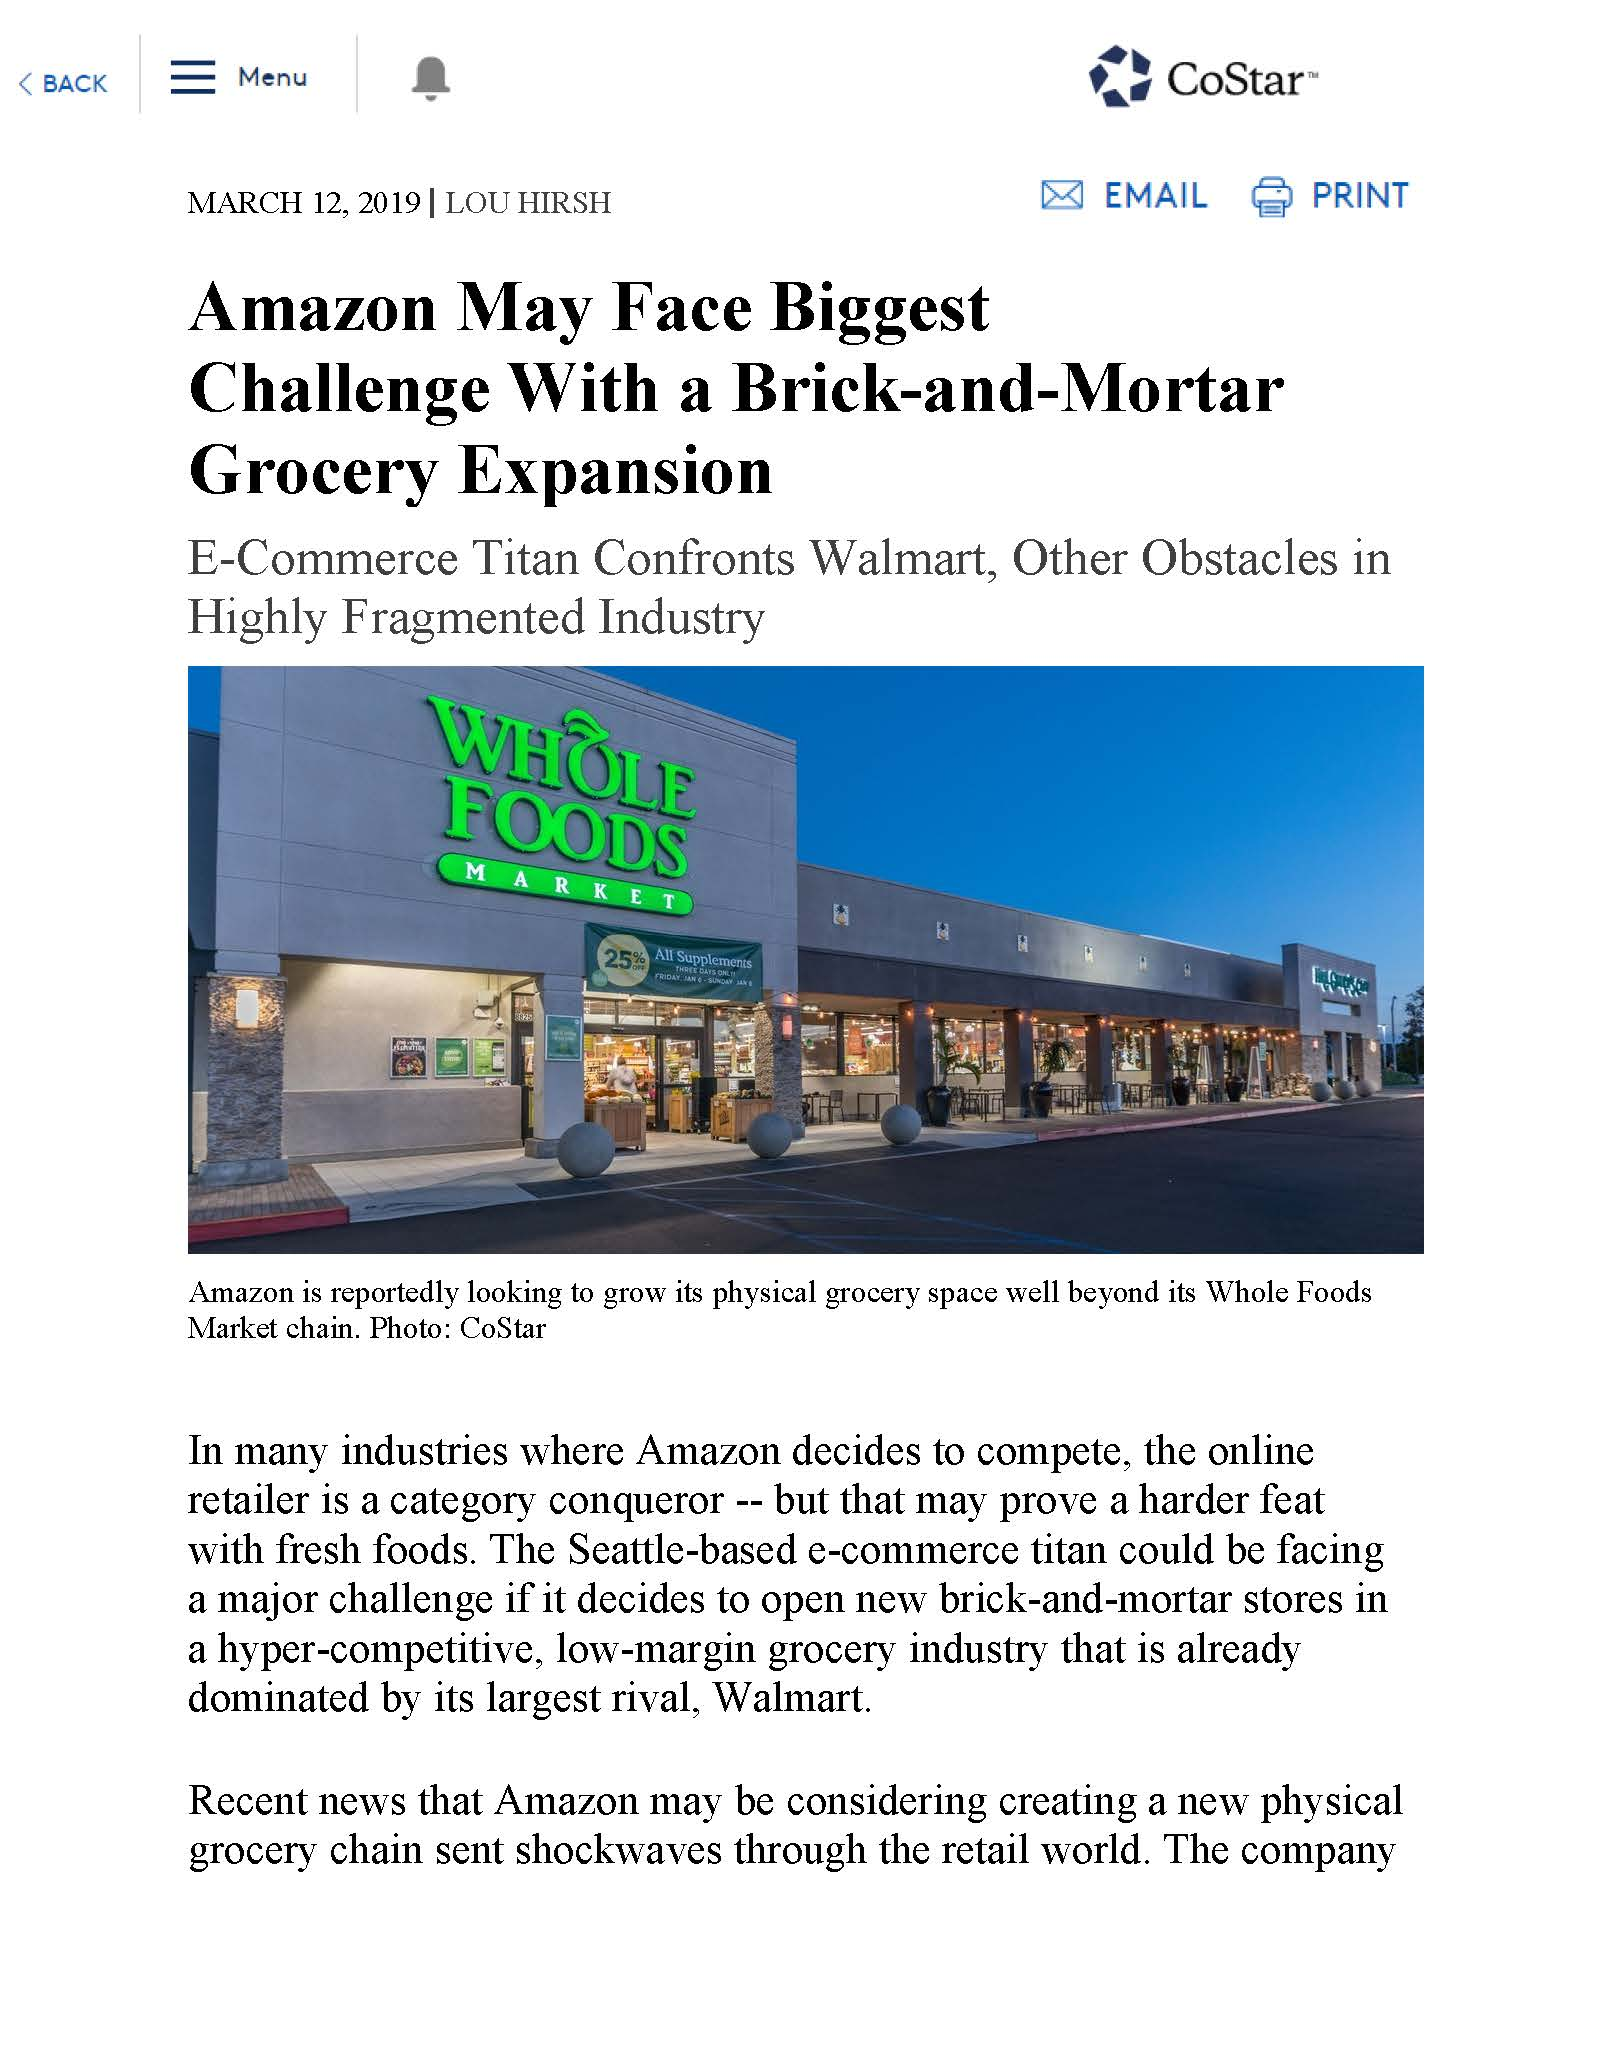 Amazon May Face Biggest Challenge With A Brick And Mortar Grocery Expansion Page 1